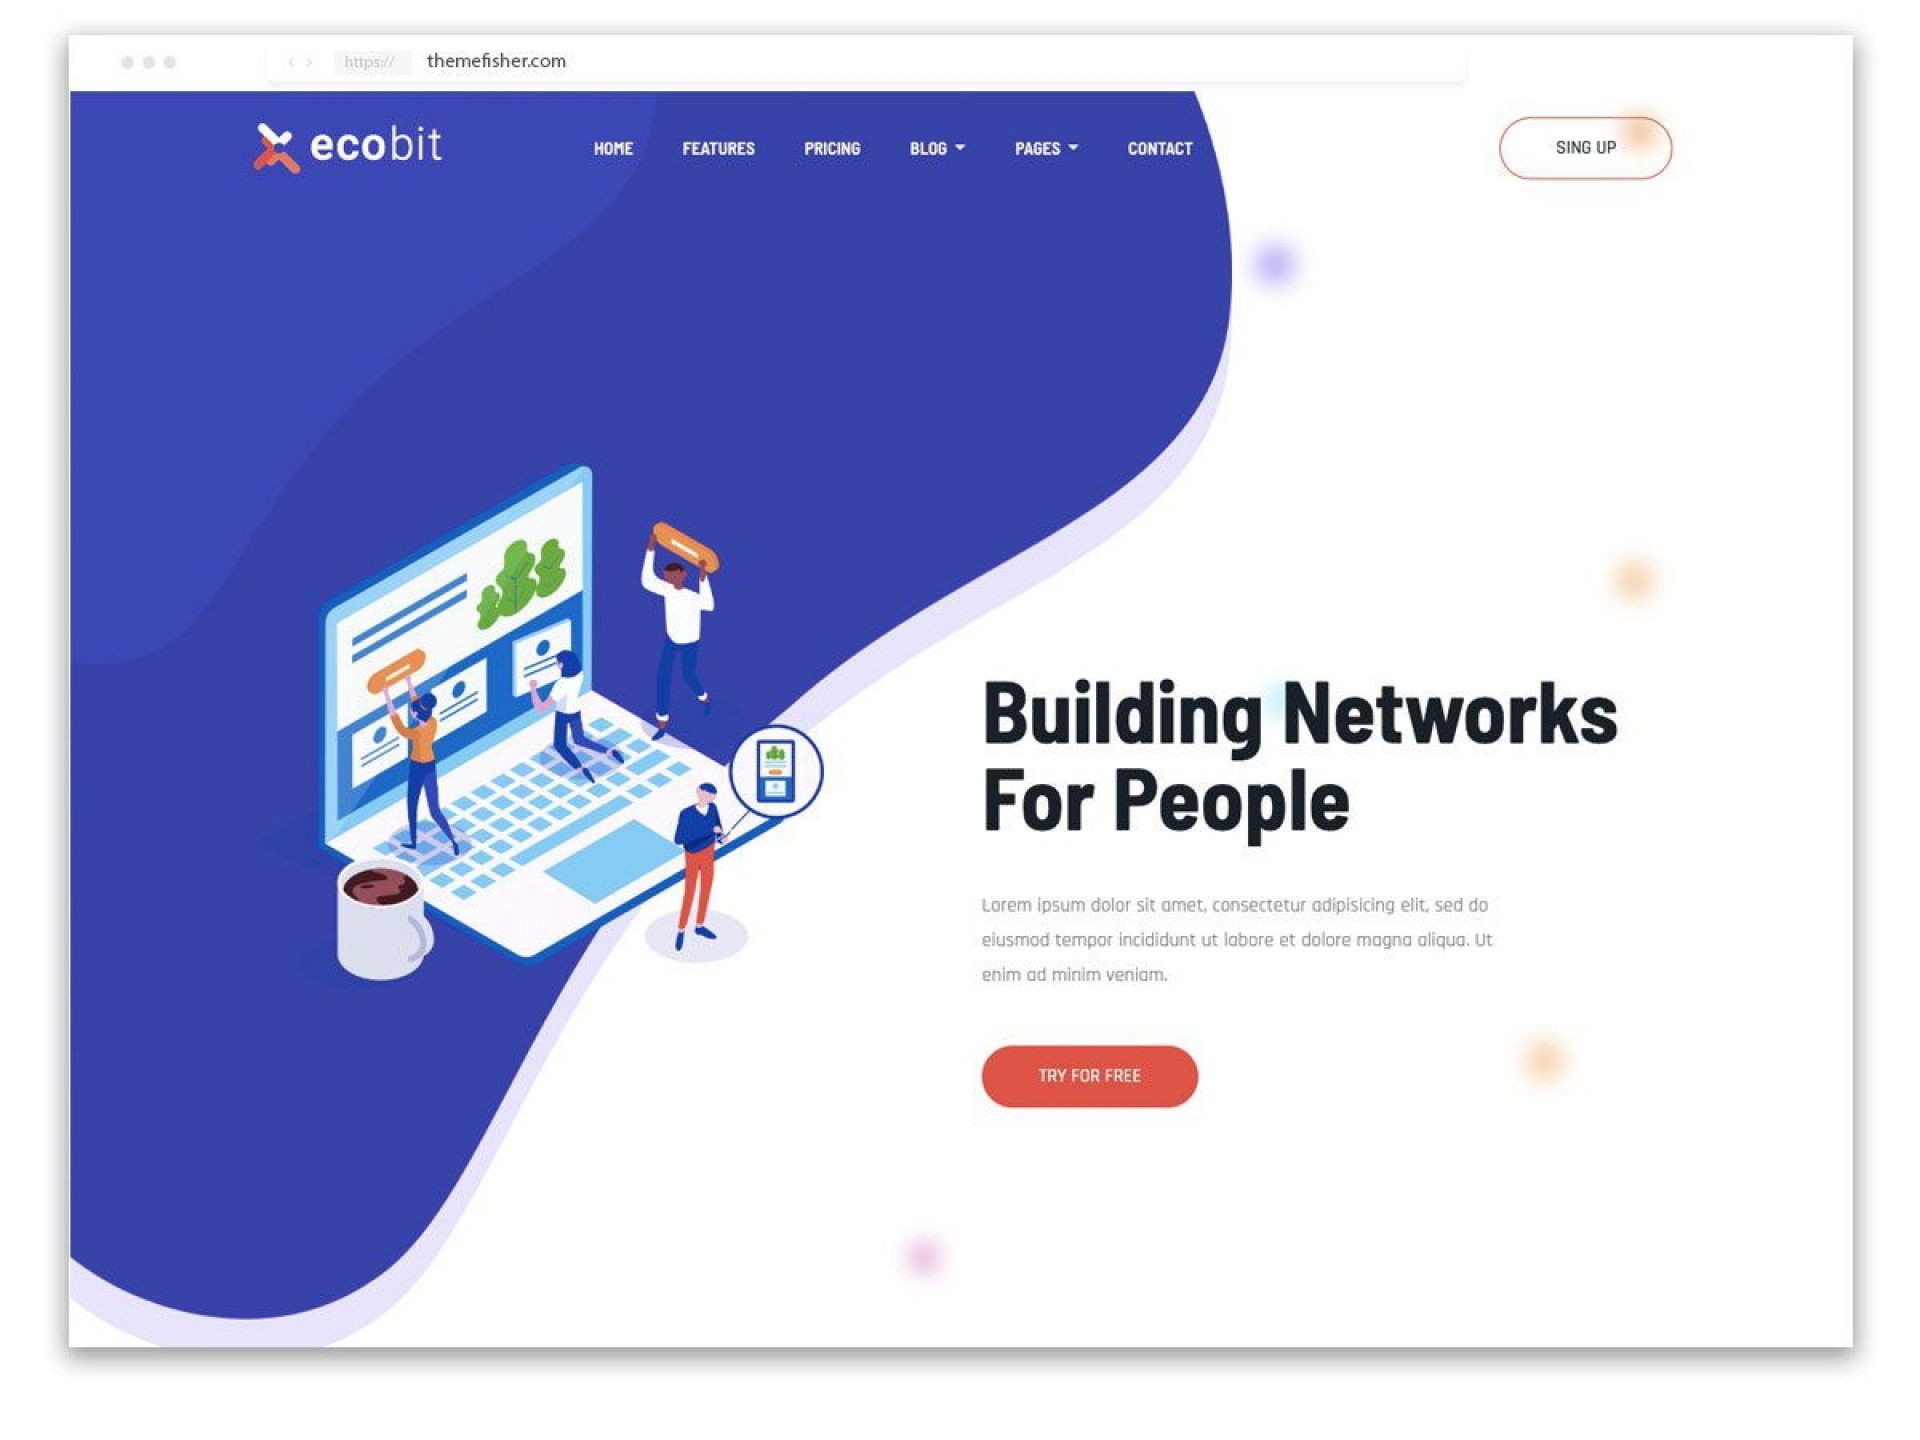 004 Amazing Free Landing Page Template Bootstrap Highest Quality  3 Html5 20191920